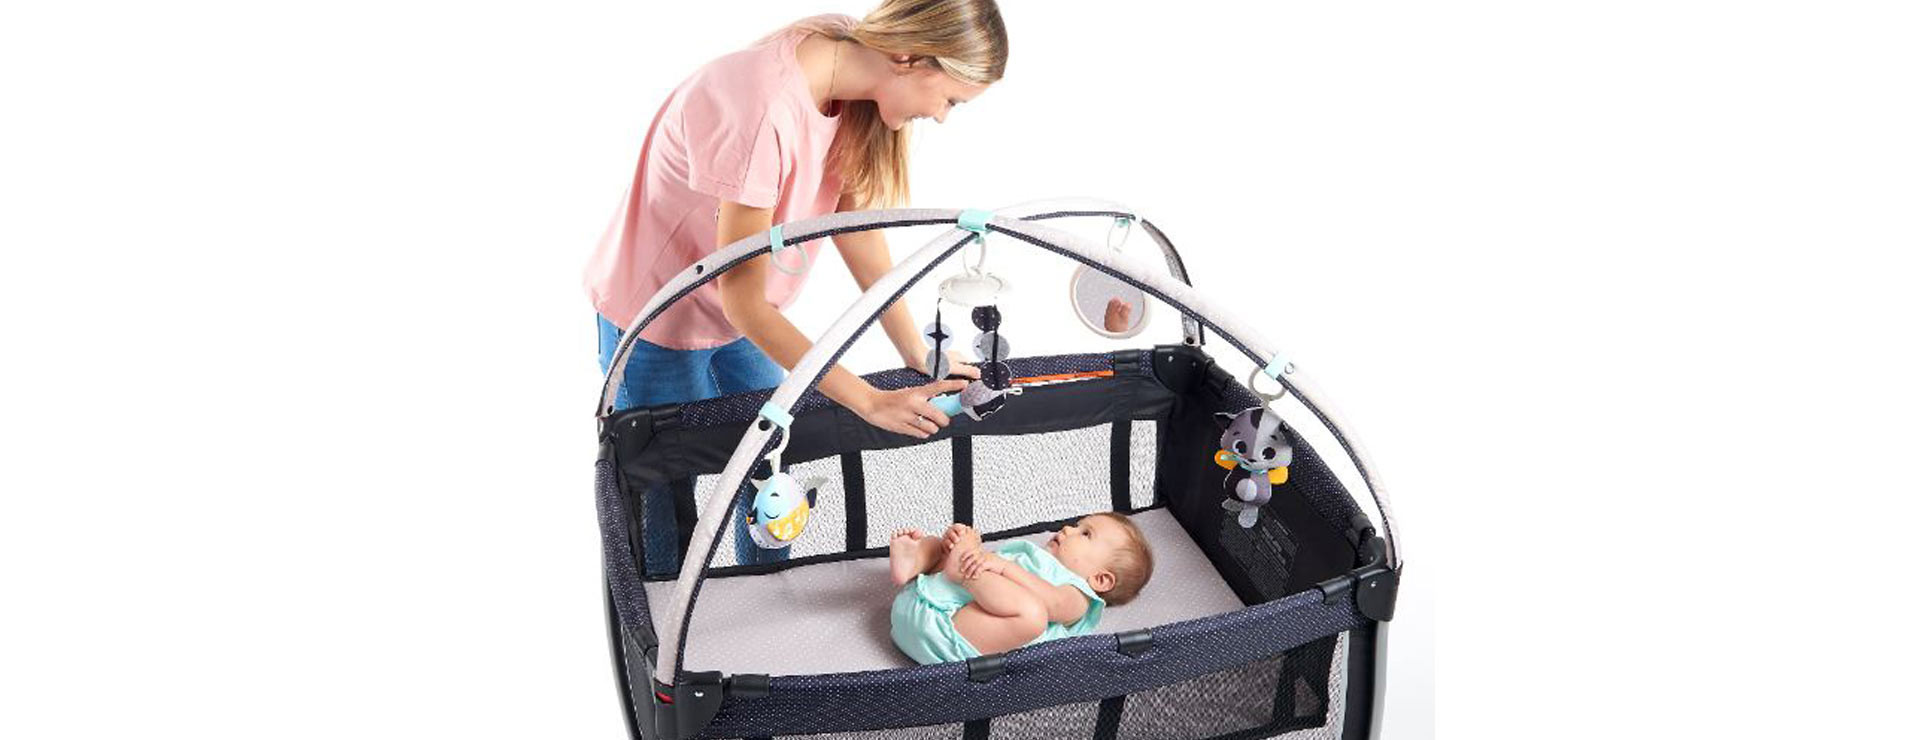 Versatile All-in-one Deluxe Play Yard and Play Mat keeps baby safe and entertained